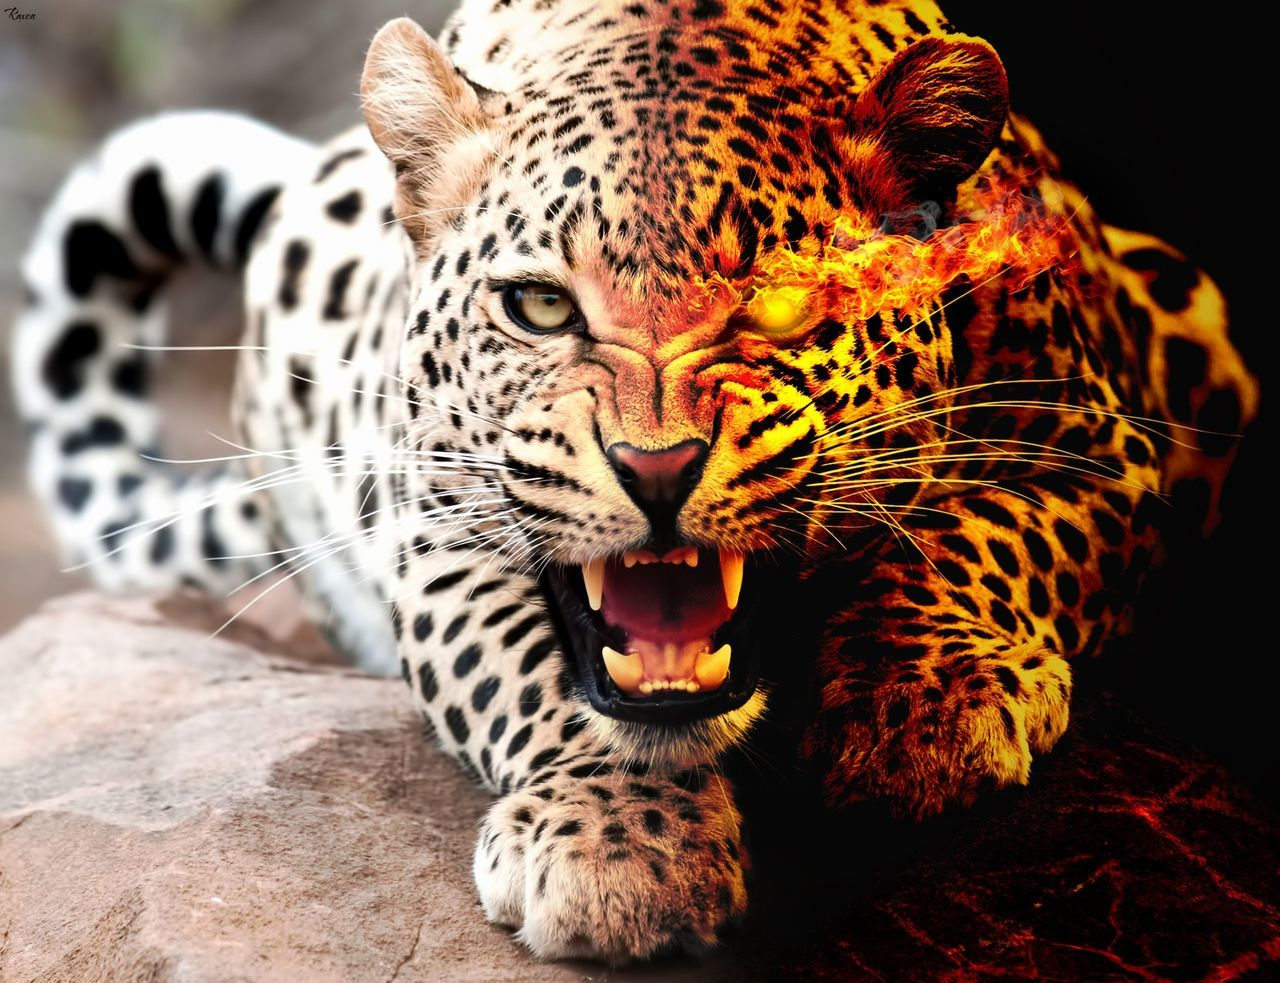 one animal, animals in the wild, animal themes, mammal, animal wildlife, leopard, mouth open, nature, feline, day, animal markings, outdoors, no people, safari animals, tiger, close-up